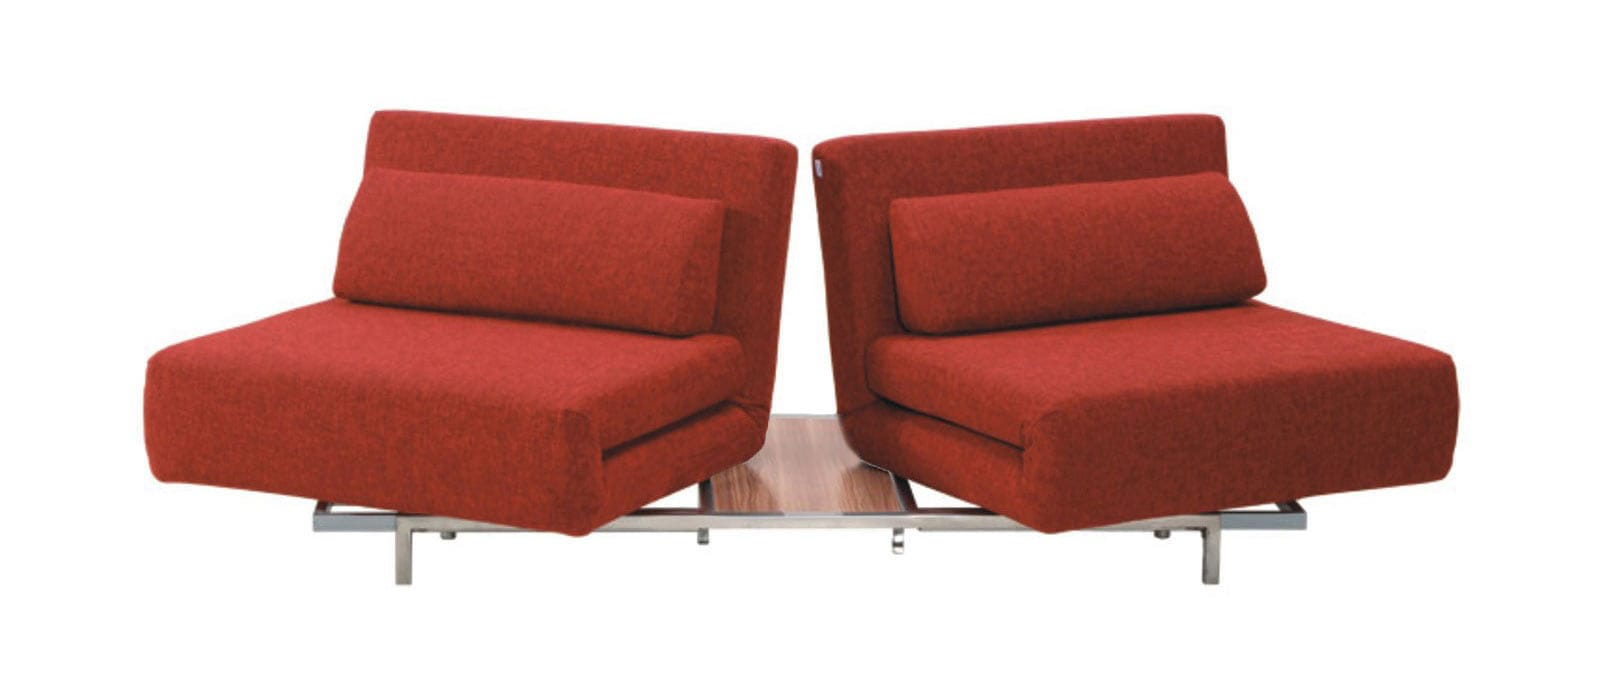 Swivel Convertible Red Fabric Sofa Bed LK06-2 by IDO